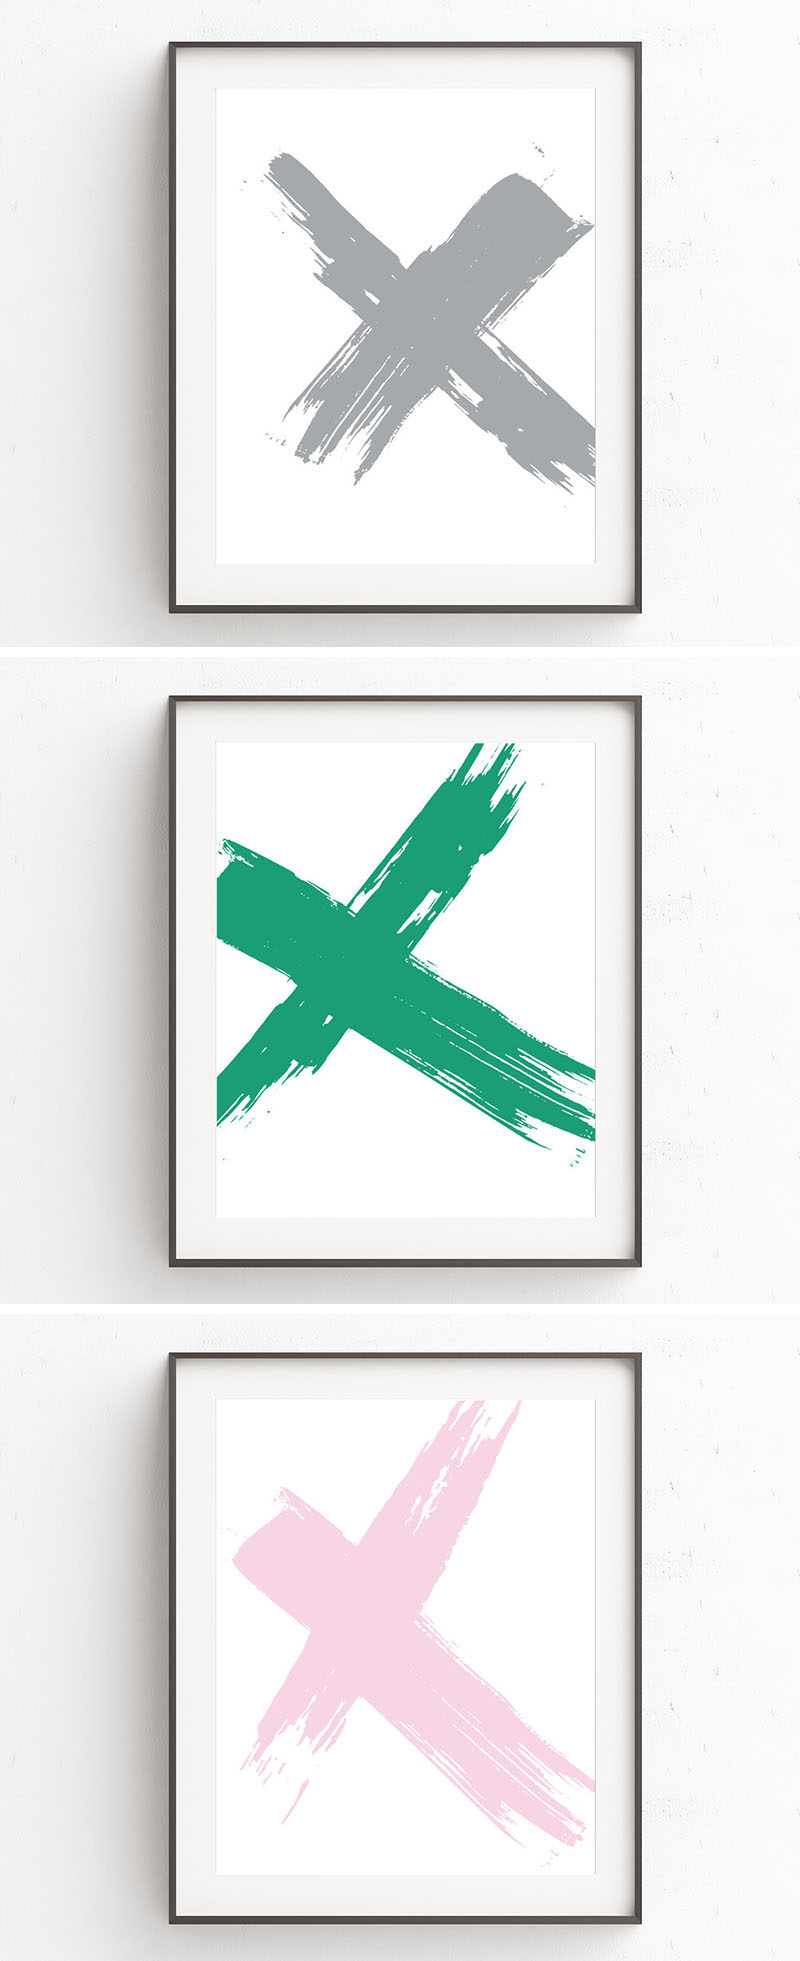 Kim Schwieters of Oju Design, creates minimalist and modern art prints in a huge range of colors, styles, and themes, like this set of X art prints that look like they were created by thick brush strokes swiped across the canvas.